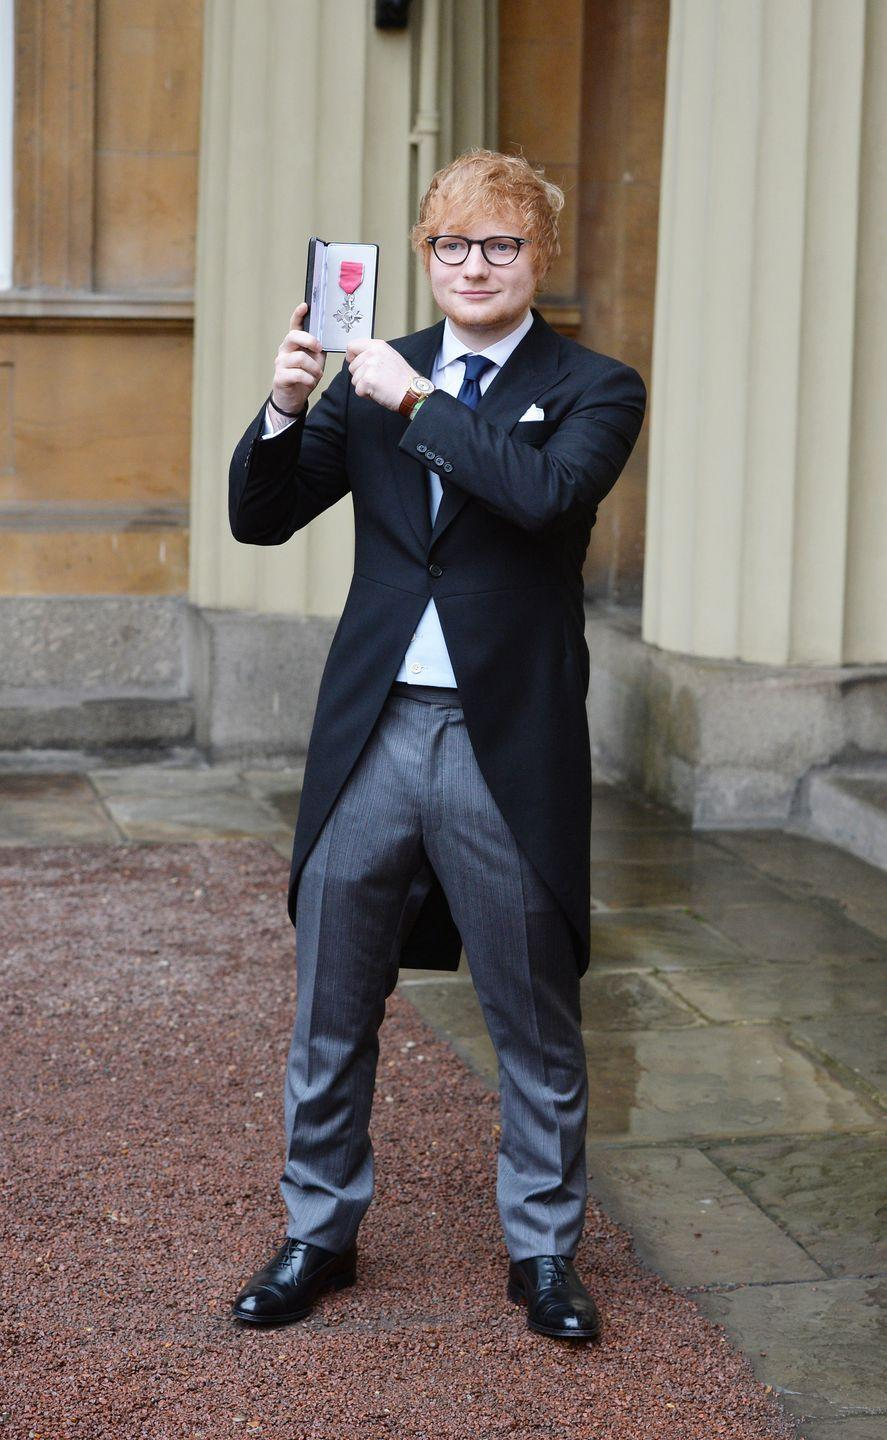 <p>Sheeran was appointed a Member of the Order of the British Empire (MBE) by Prince Charles for services to music and charity in 2017.</p>